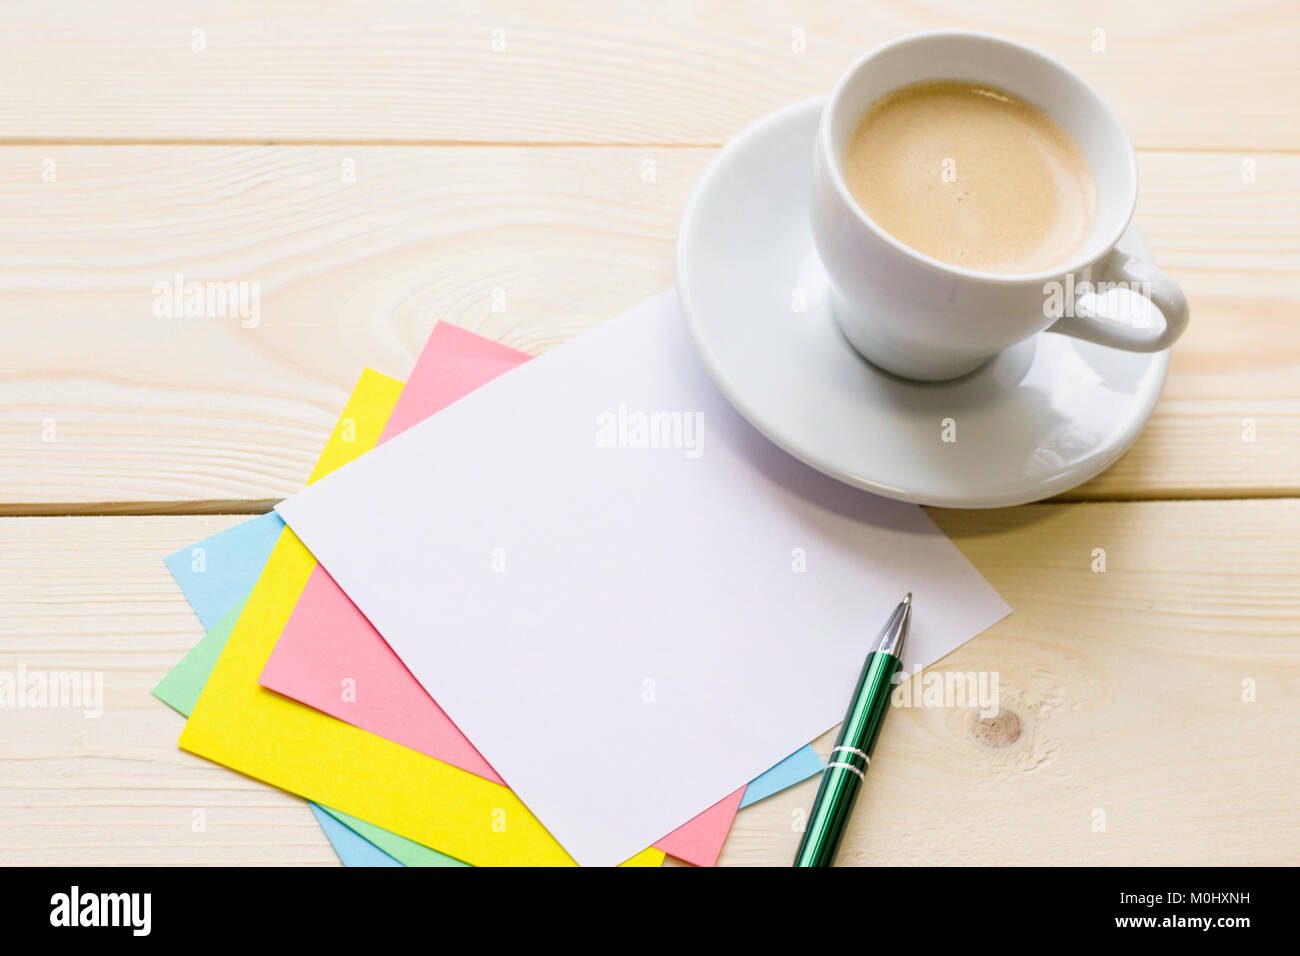 Business office work concept - Stock Image